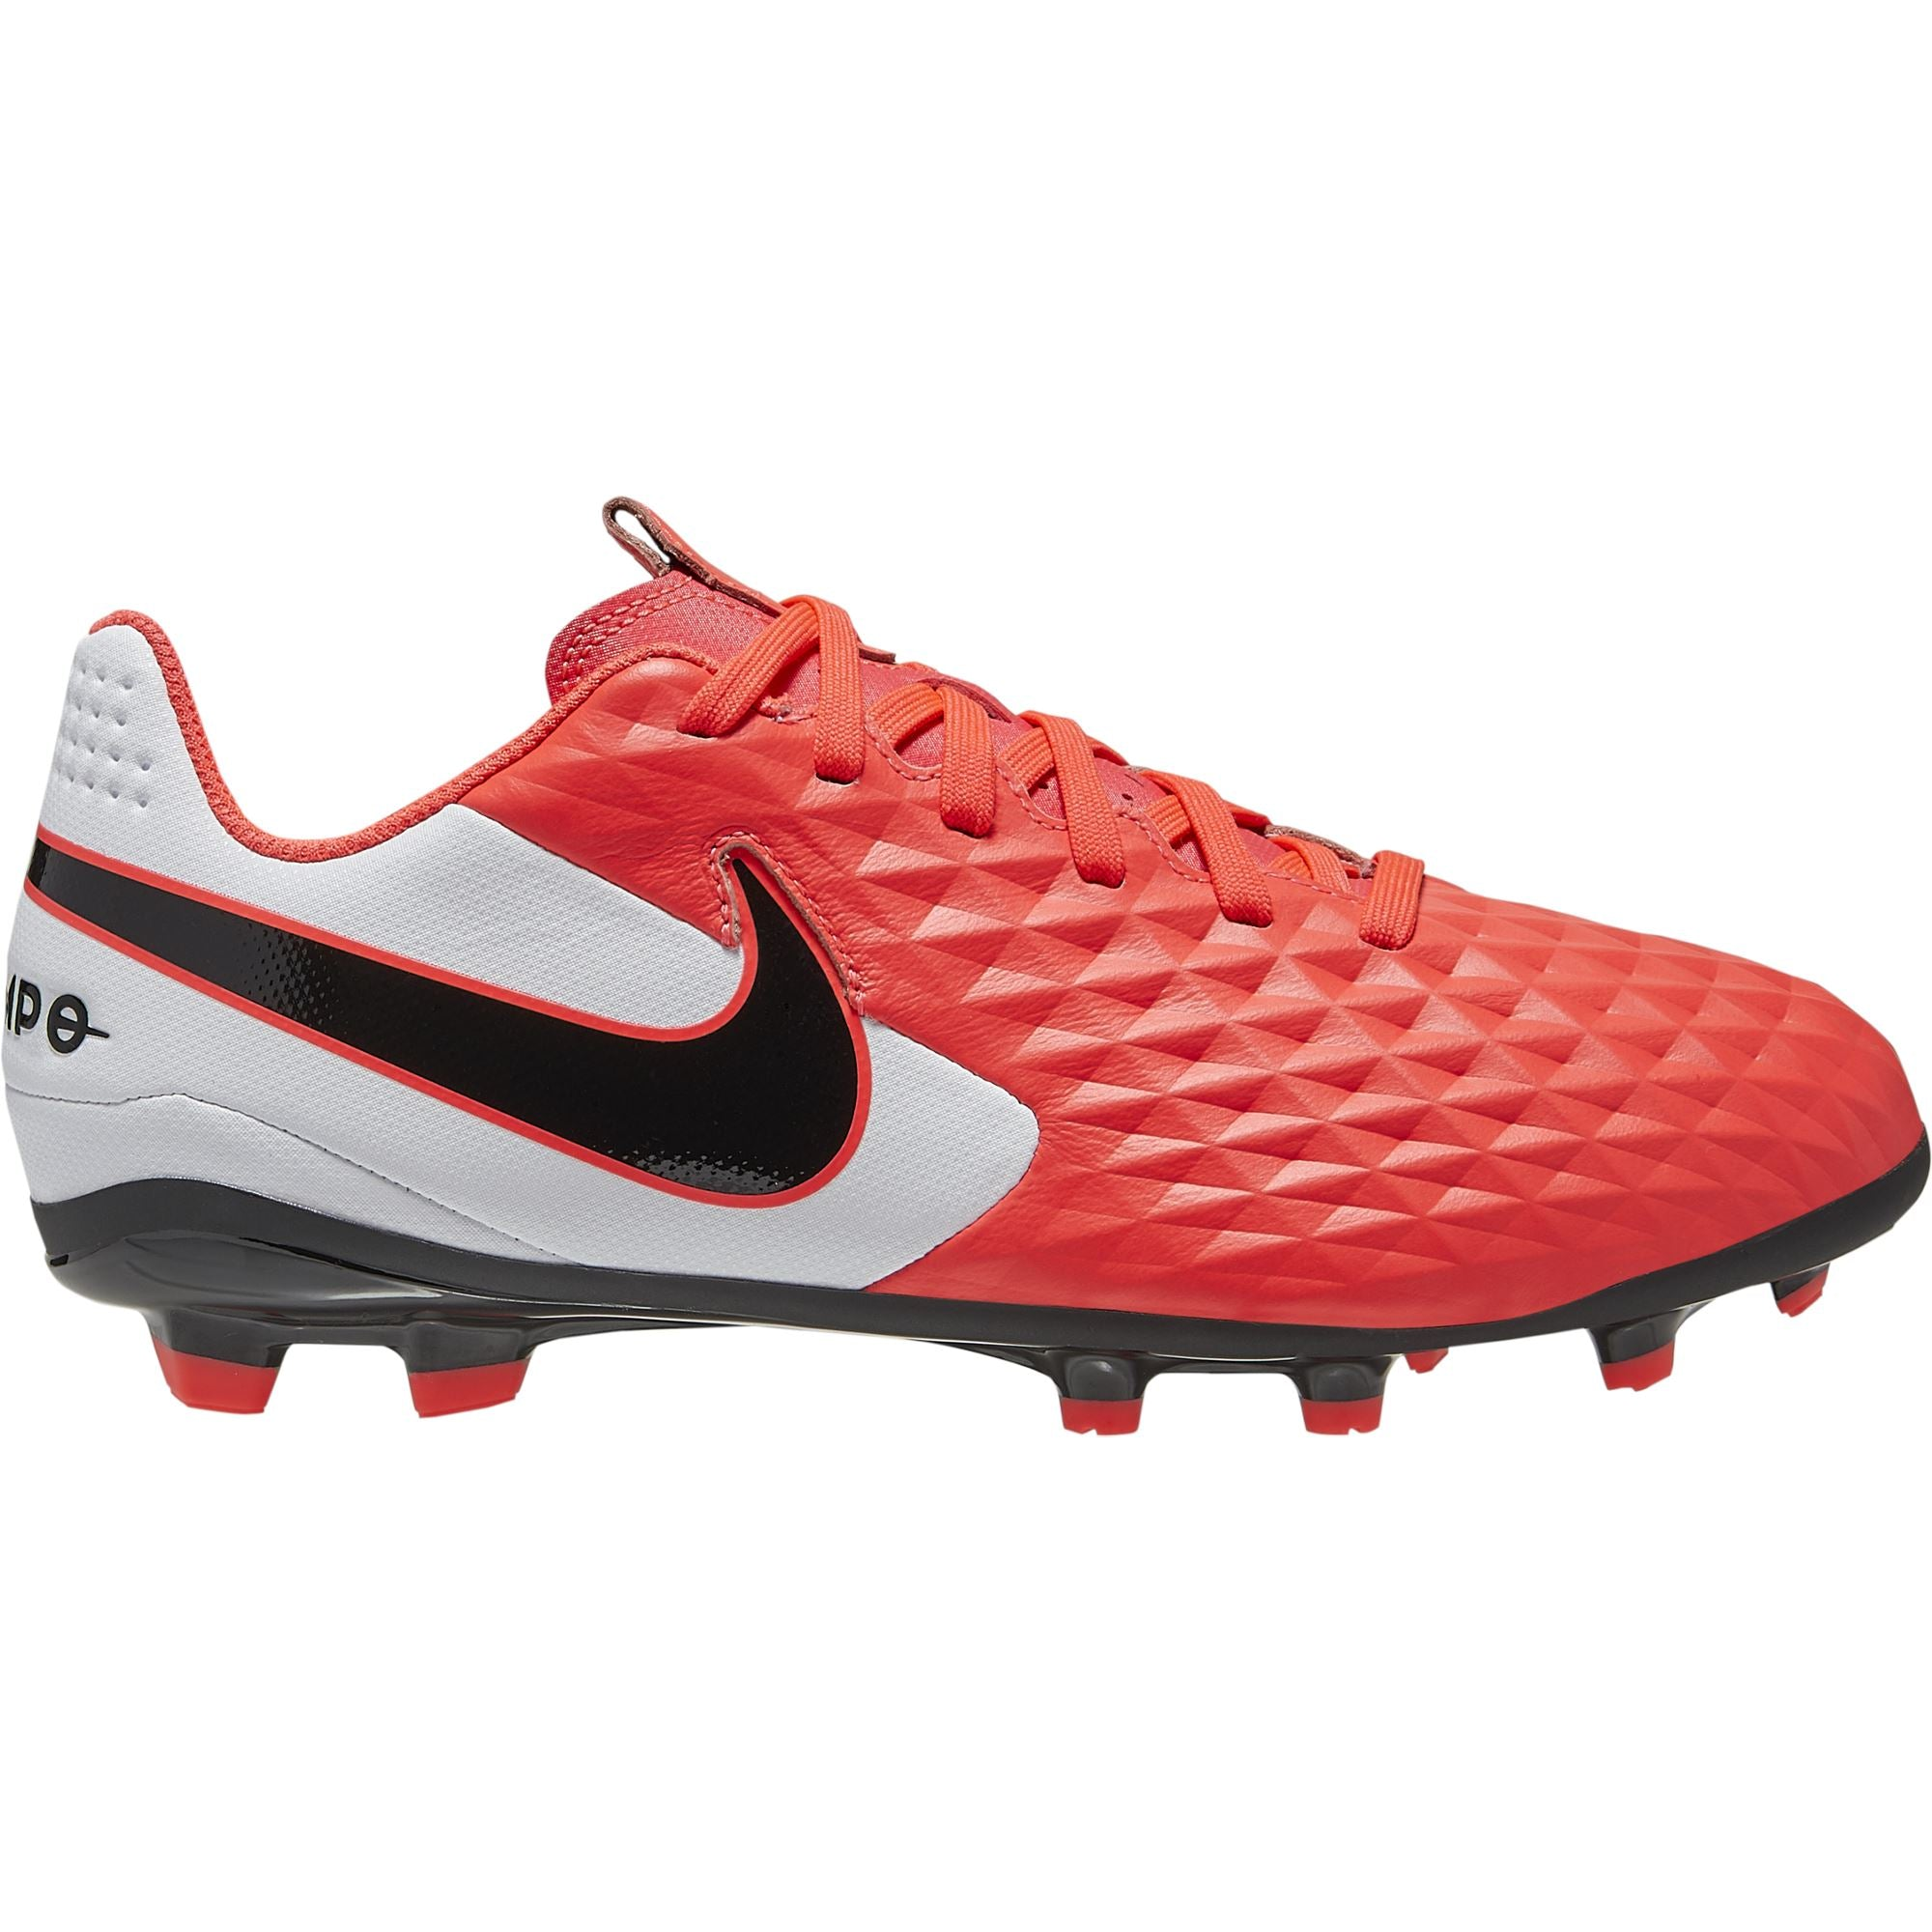 Nike JR Legend 8 Club - Laser Crimson/Black/White SP-Footwear-Football Nike